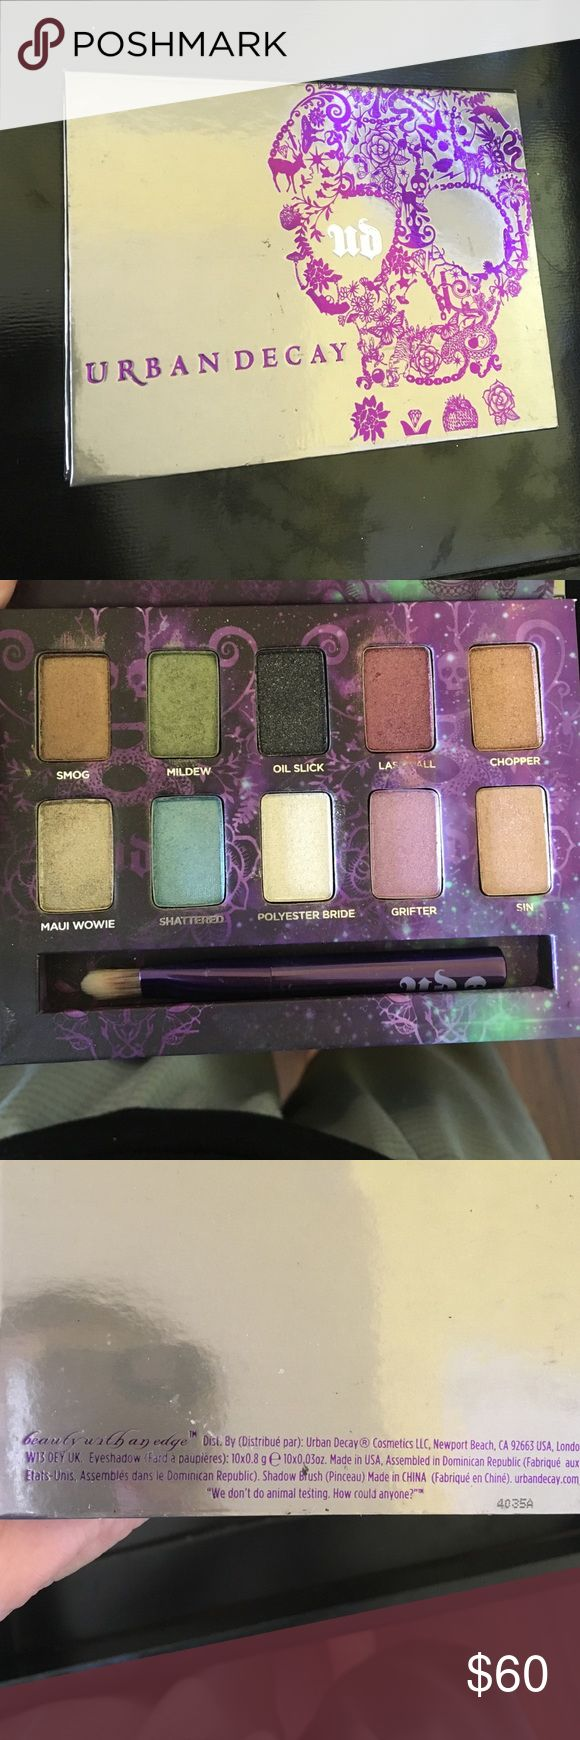 Urban decay ammo palette Super pigmented shimmer eyeshadow. Only been swatched. Not available on the Sephora website anymore, think it was limited edition. Urban Decay Makeup Eyeshadow